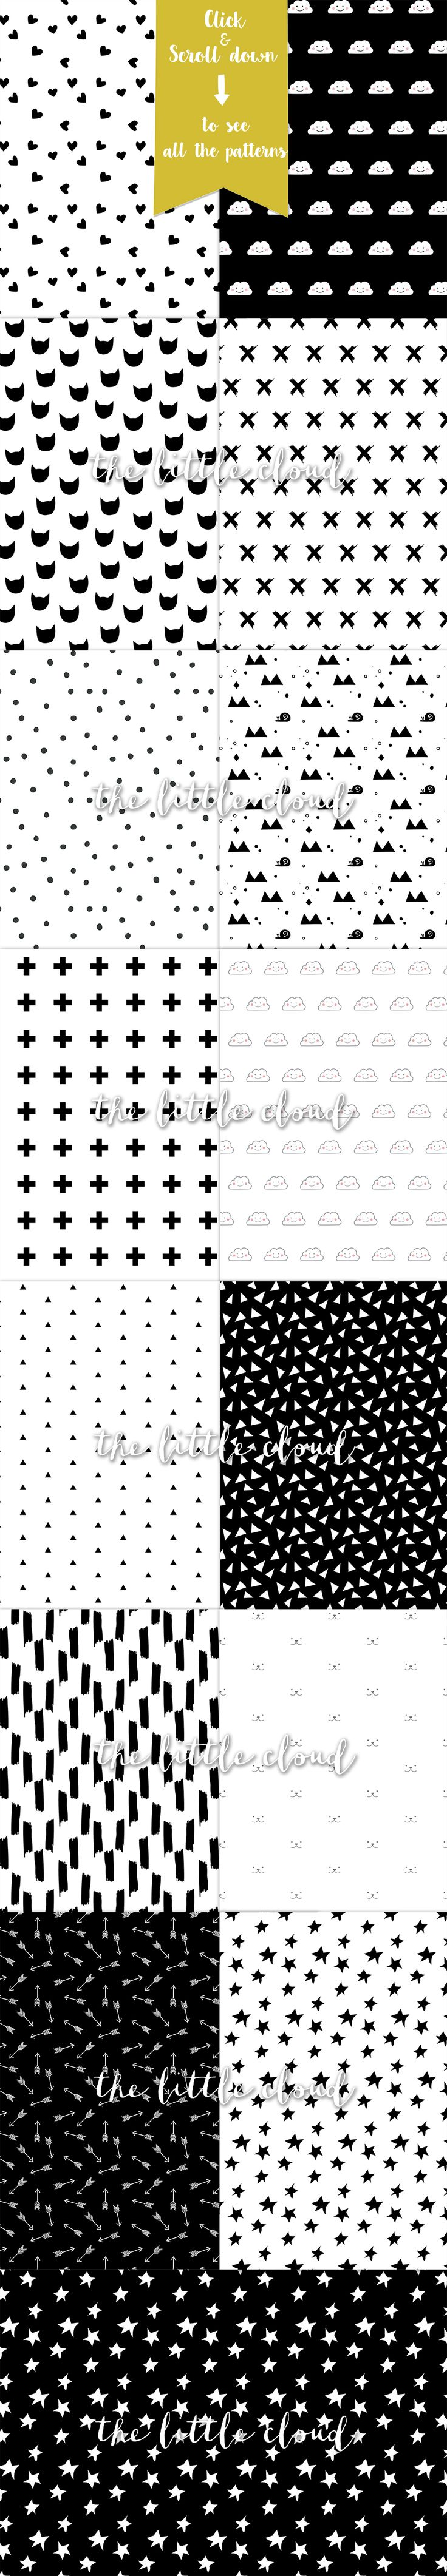 Modern kids patterns,black and white by The little cloud on @creativemarket